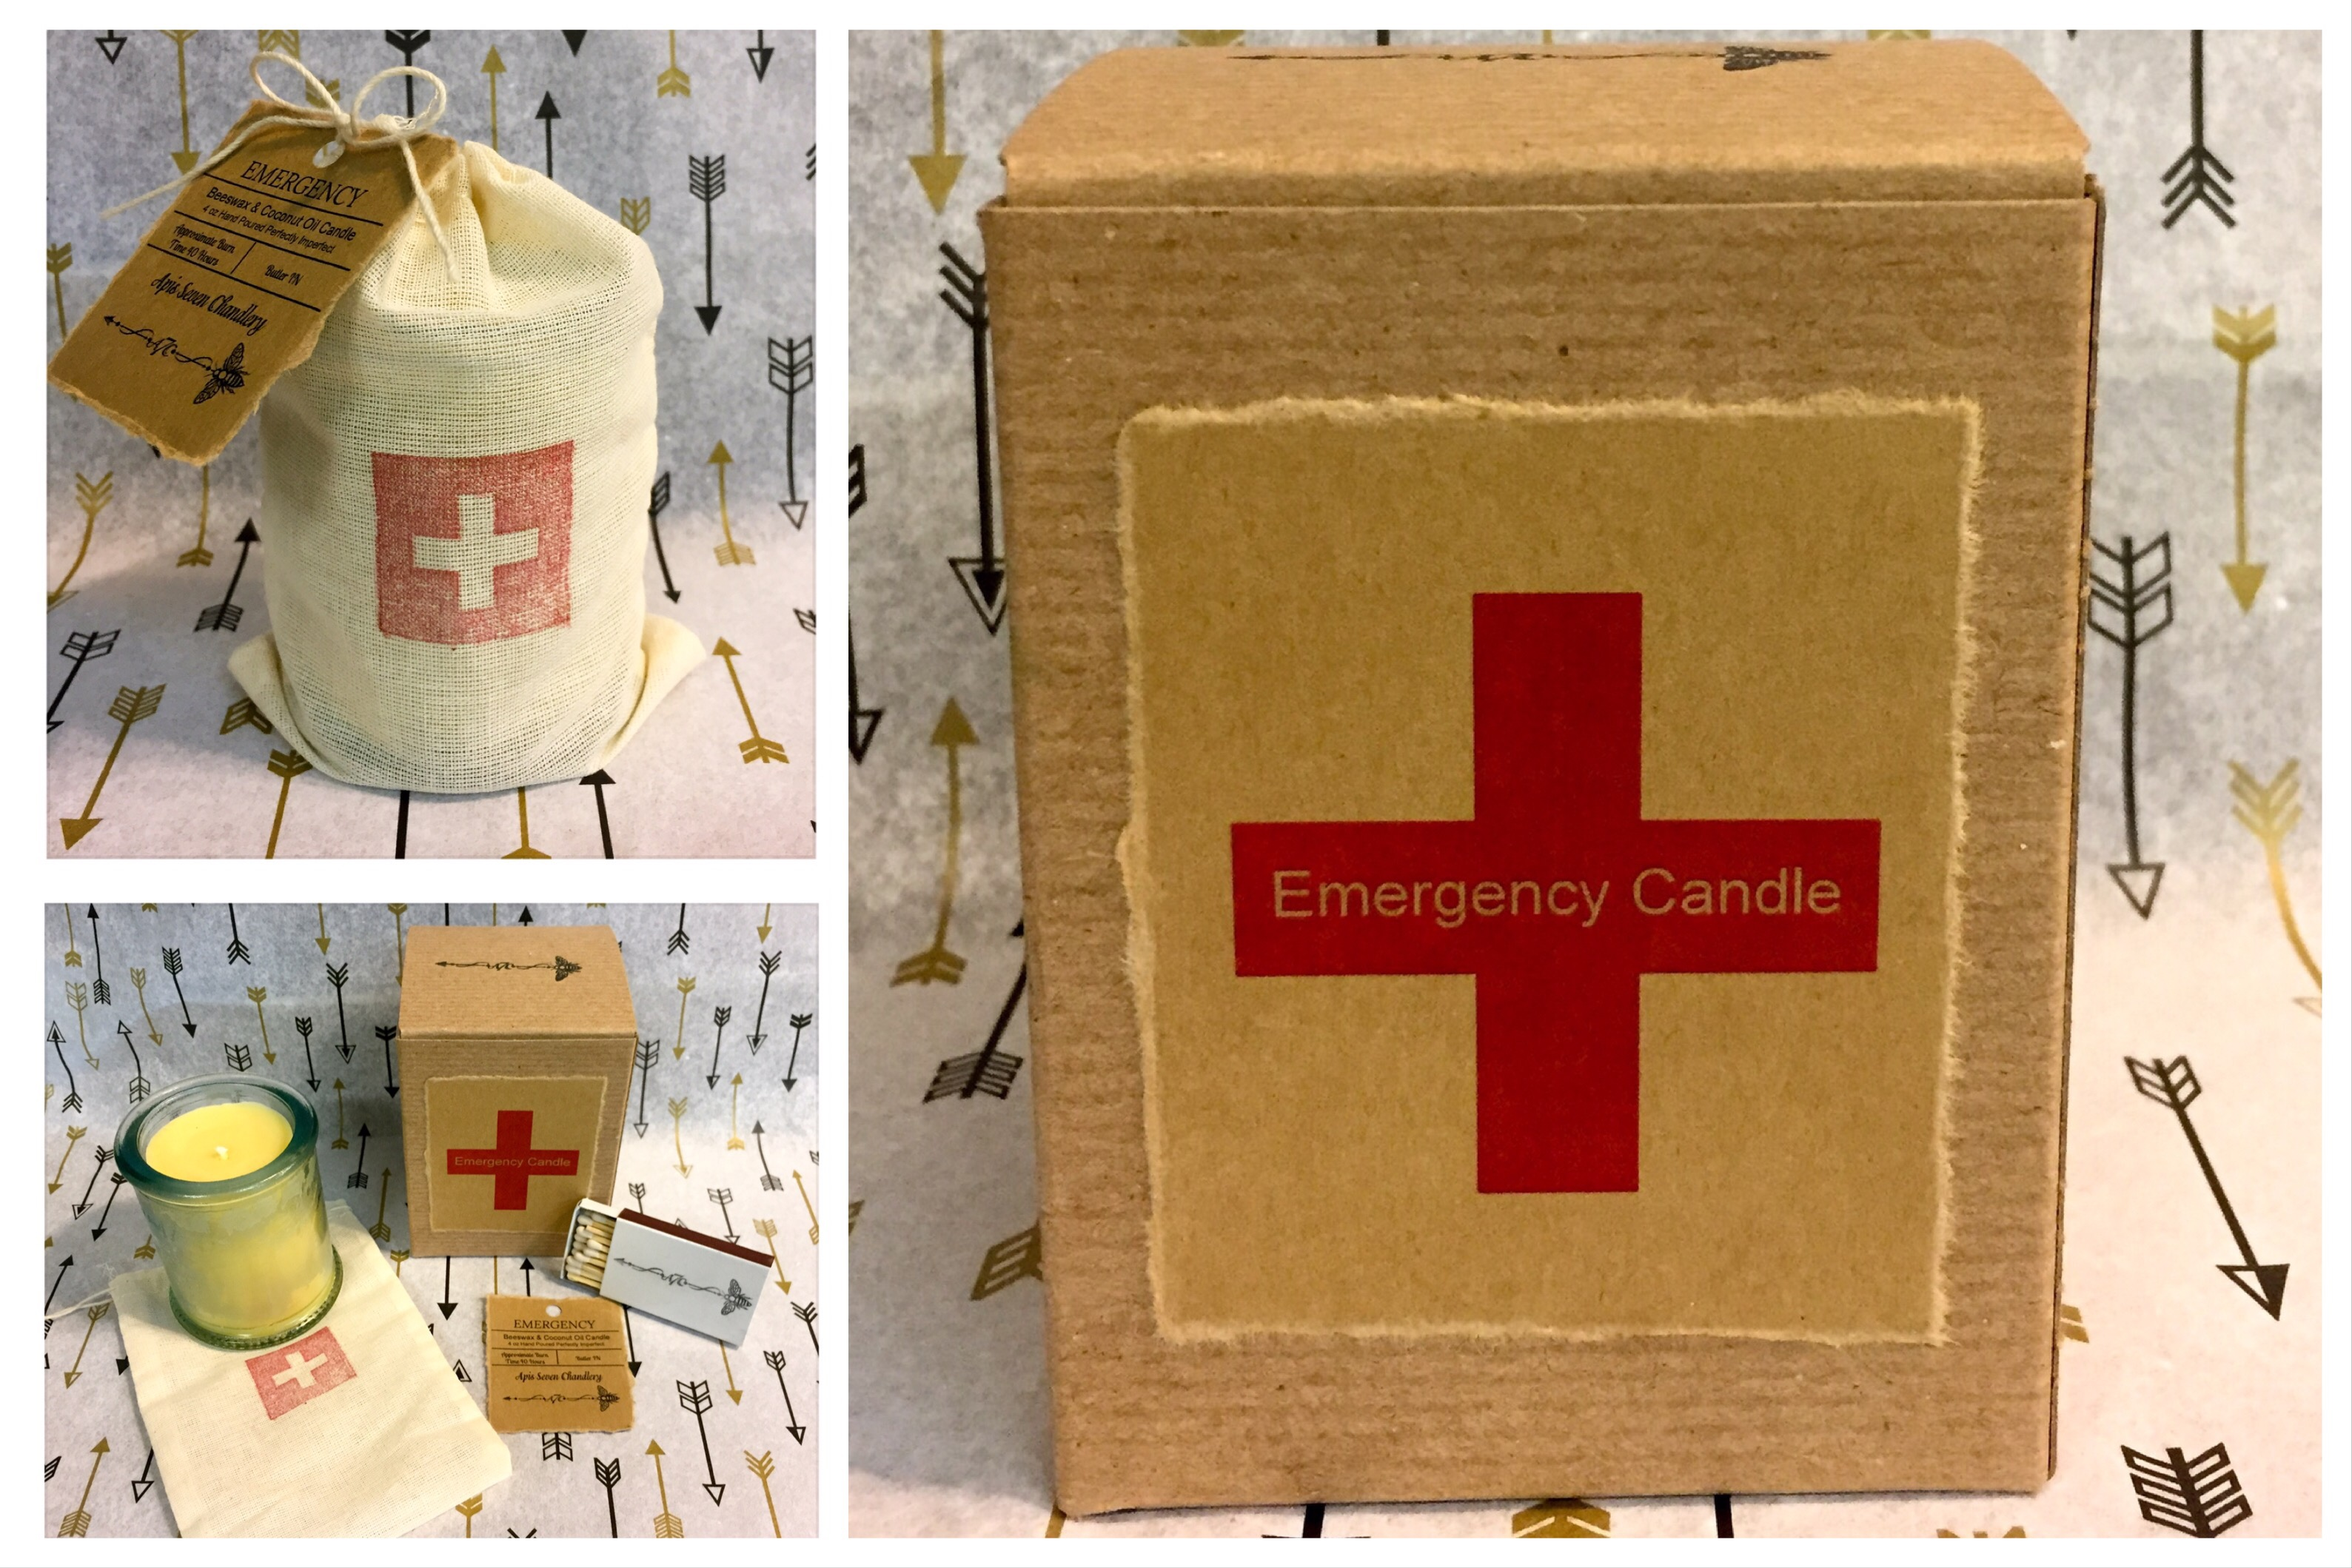 Emergency Candle – Apis Seven Chandlery